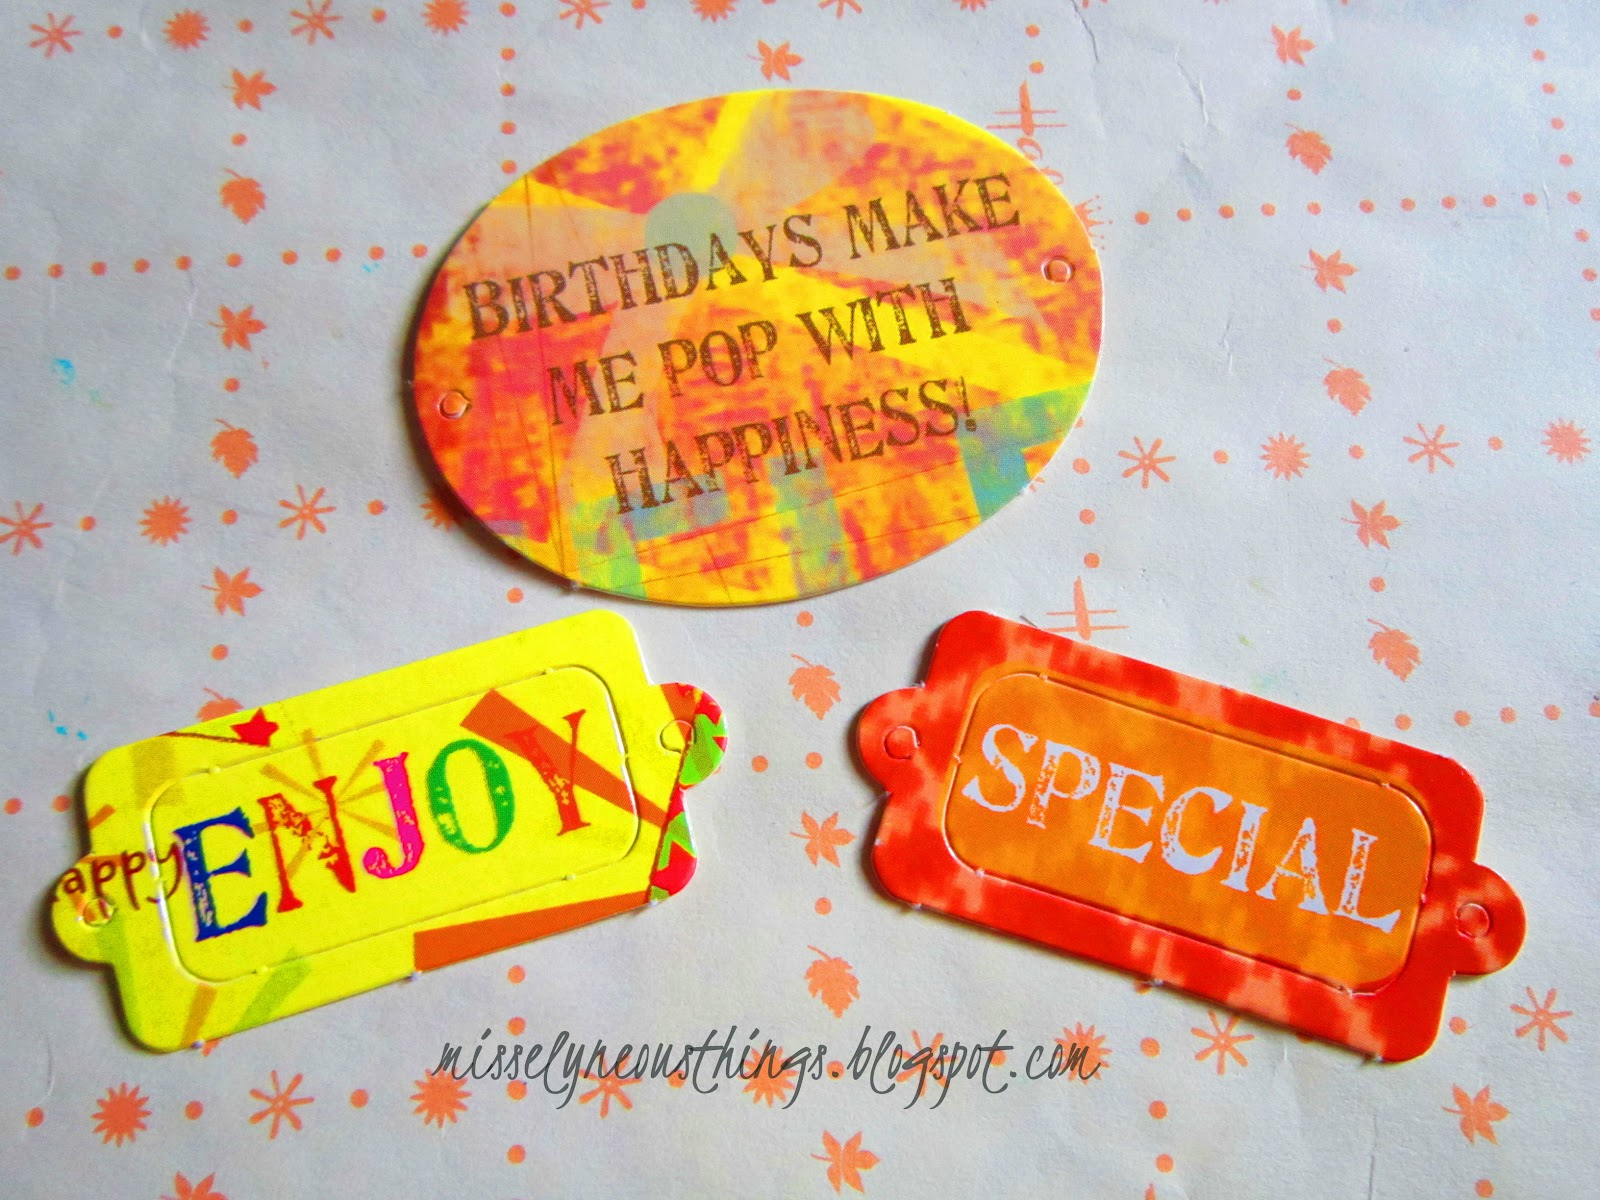 How to make scrapbook simple - These Embossed Cardboard Decorations Add Texture And Crafty Look To Our Cheap Scrapbook Project Here Are Some Of Hallmark S All About Scrapbooking Embossed